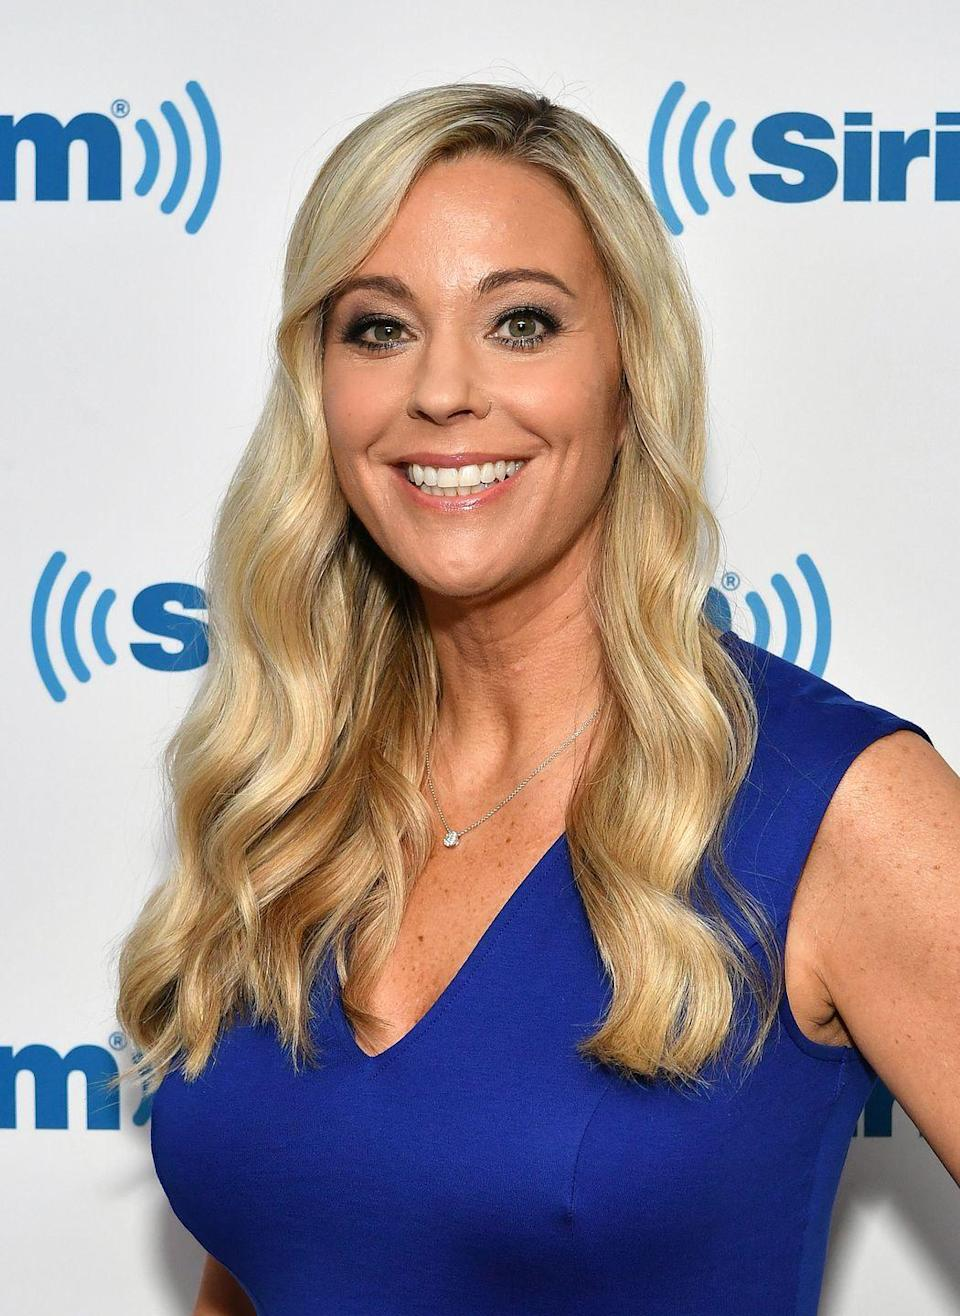 <p>Following her separation from husband Jon in 2009, Kate continued filming the family reality show until 2017, under the readjusted title <em>Kate Plus Eigh</em><em>t</em>. Last year, TLC aired a spin-off for Gosselin, titled <em>Kate Plus Date</em> – wherein Kate's two eldest daughters sought to find her a romantic partner.</p>